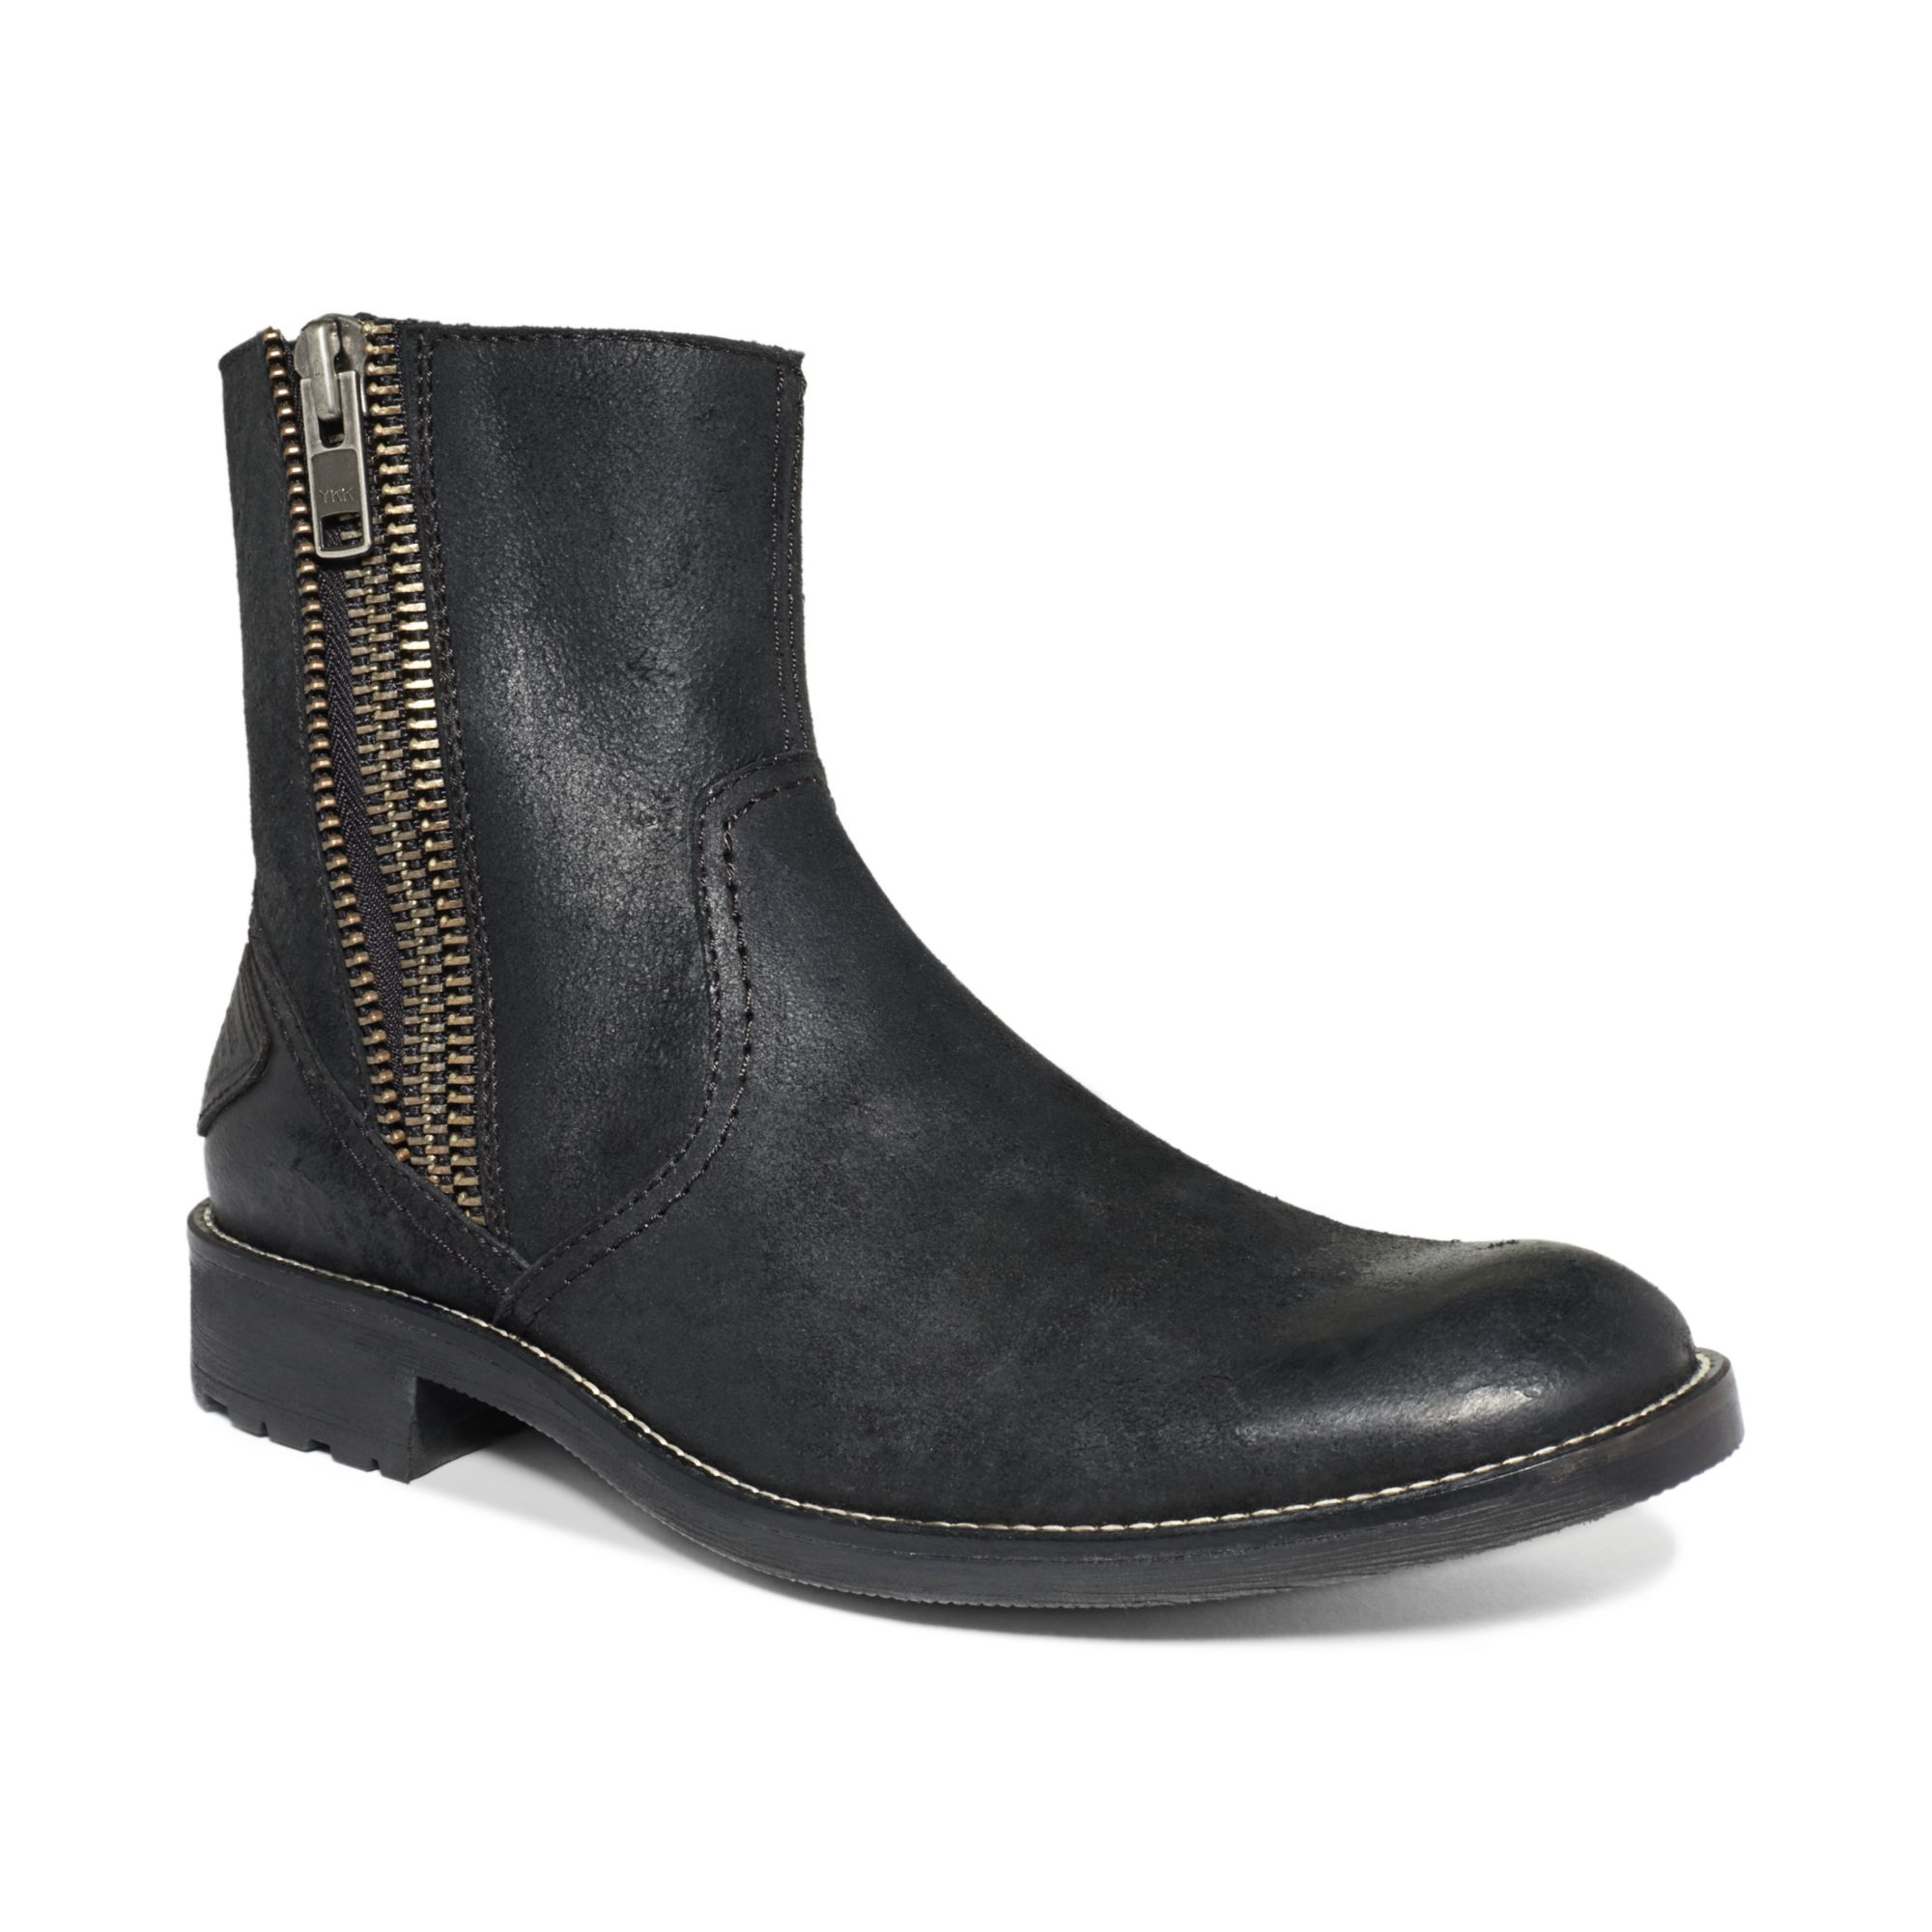 Lyst - Guess Mens Shoes Cayden Zip Boots in Black for Men